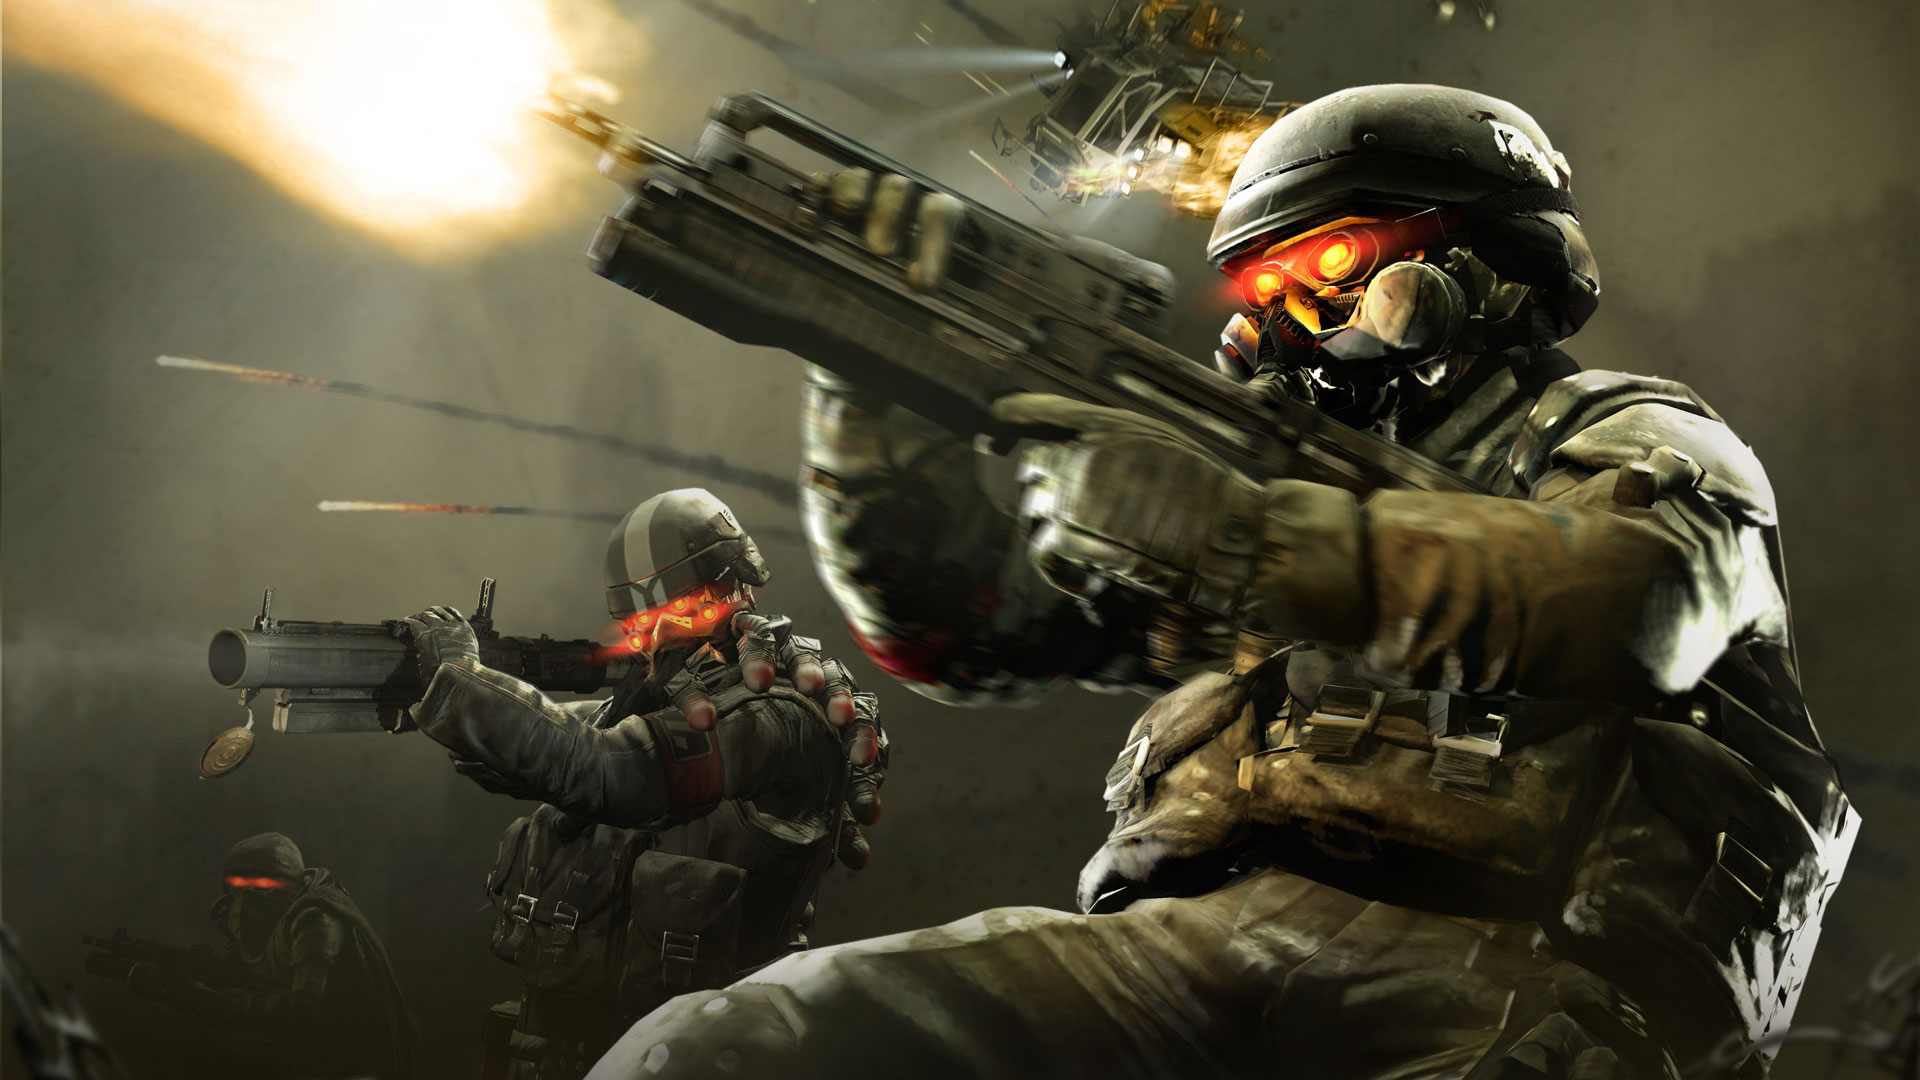 Rumor: 'Killzone 4' is PS4 title, releasing this year